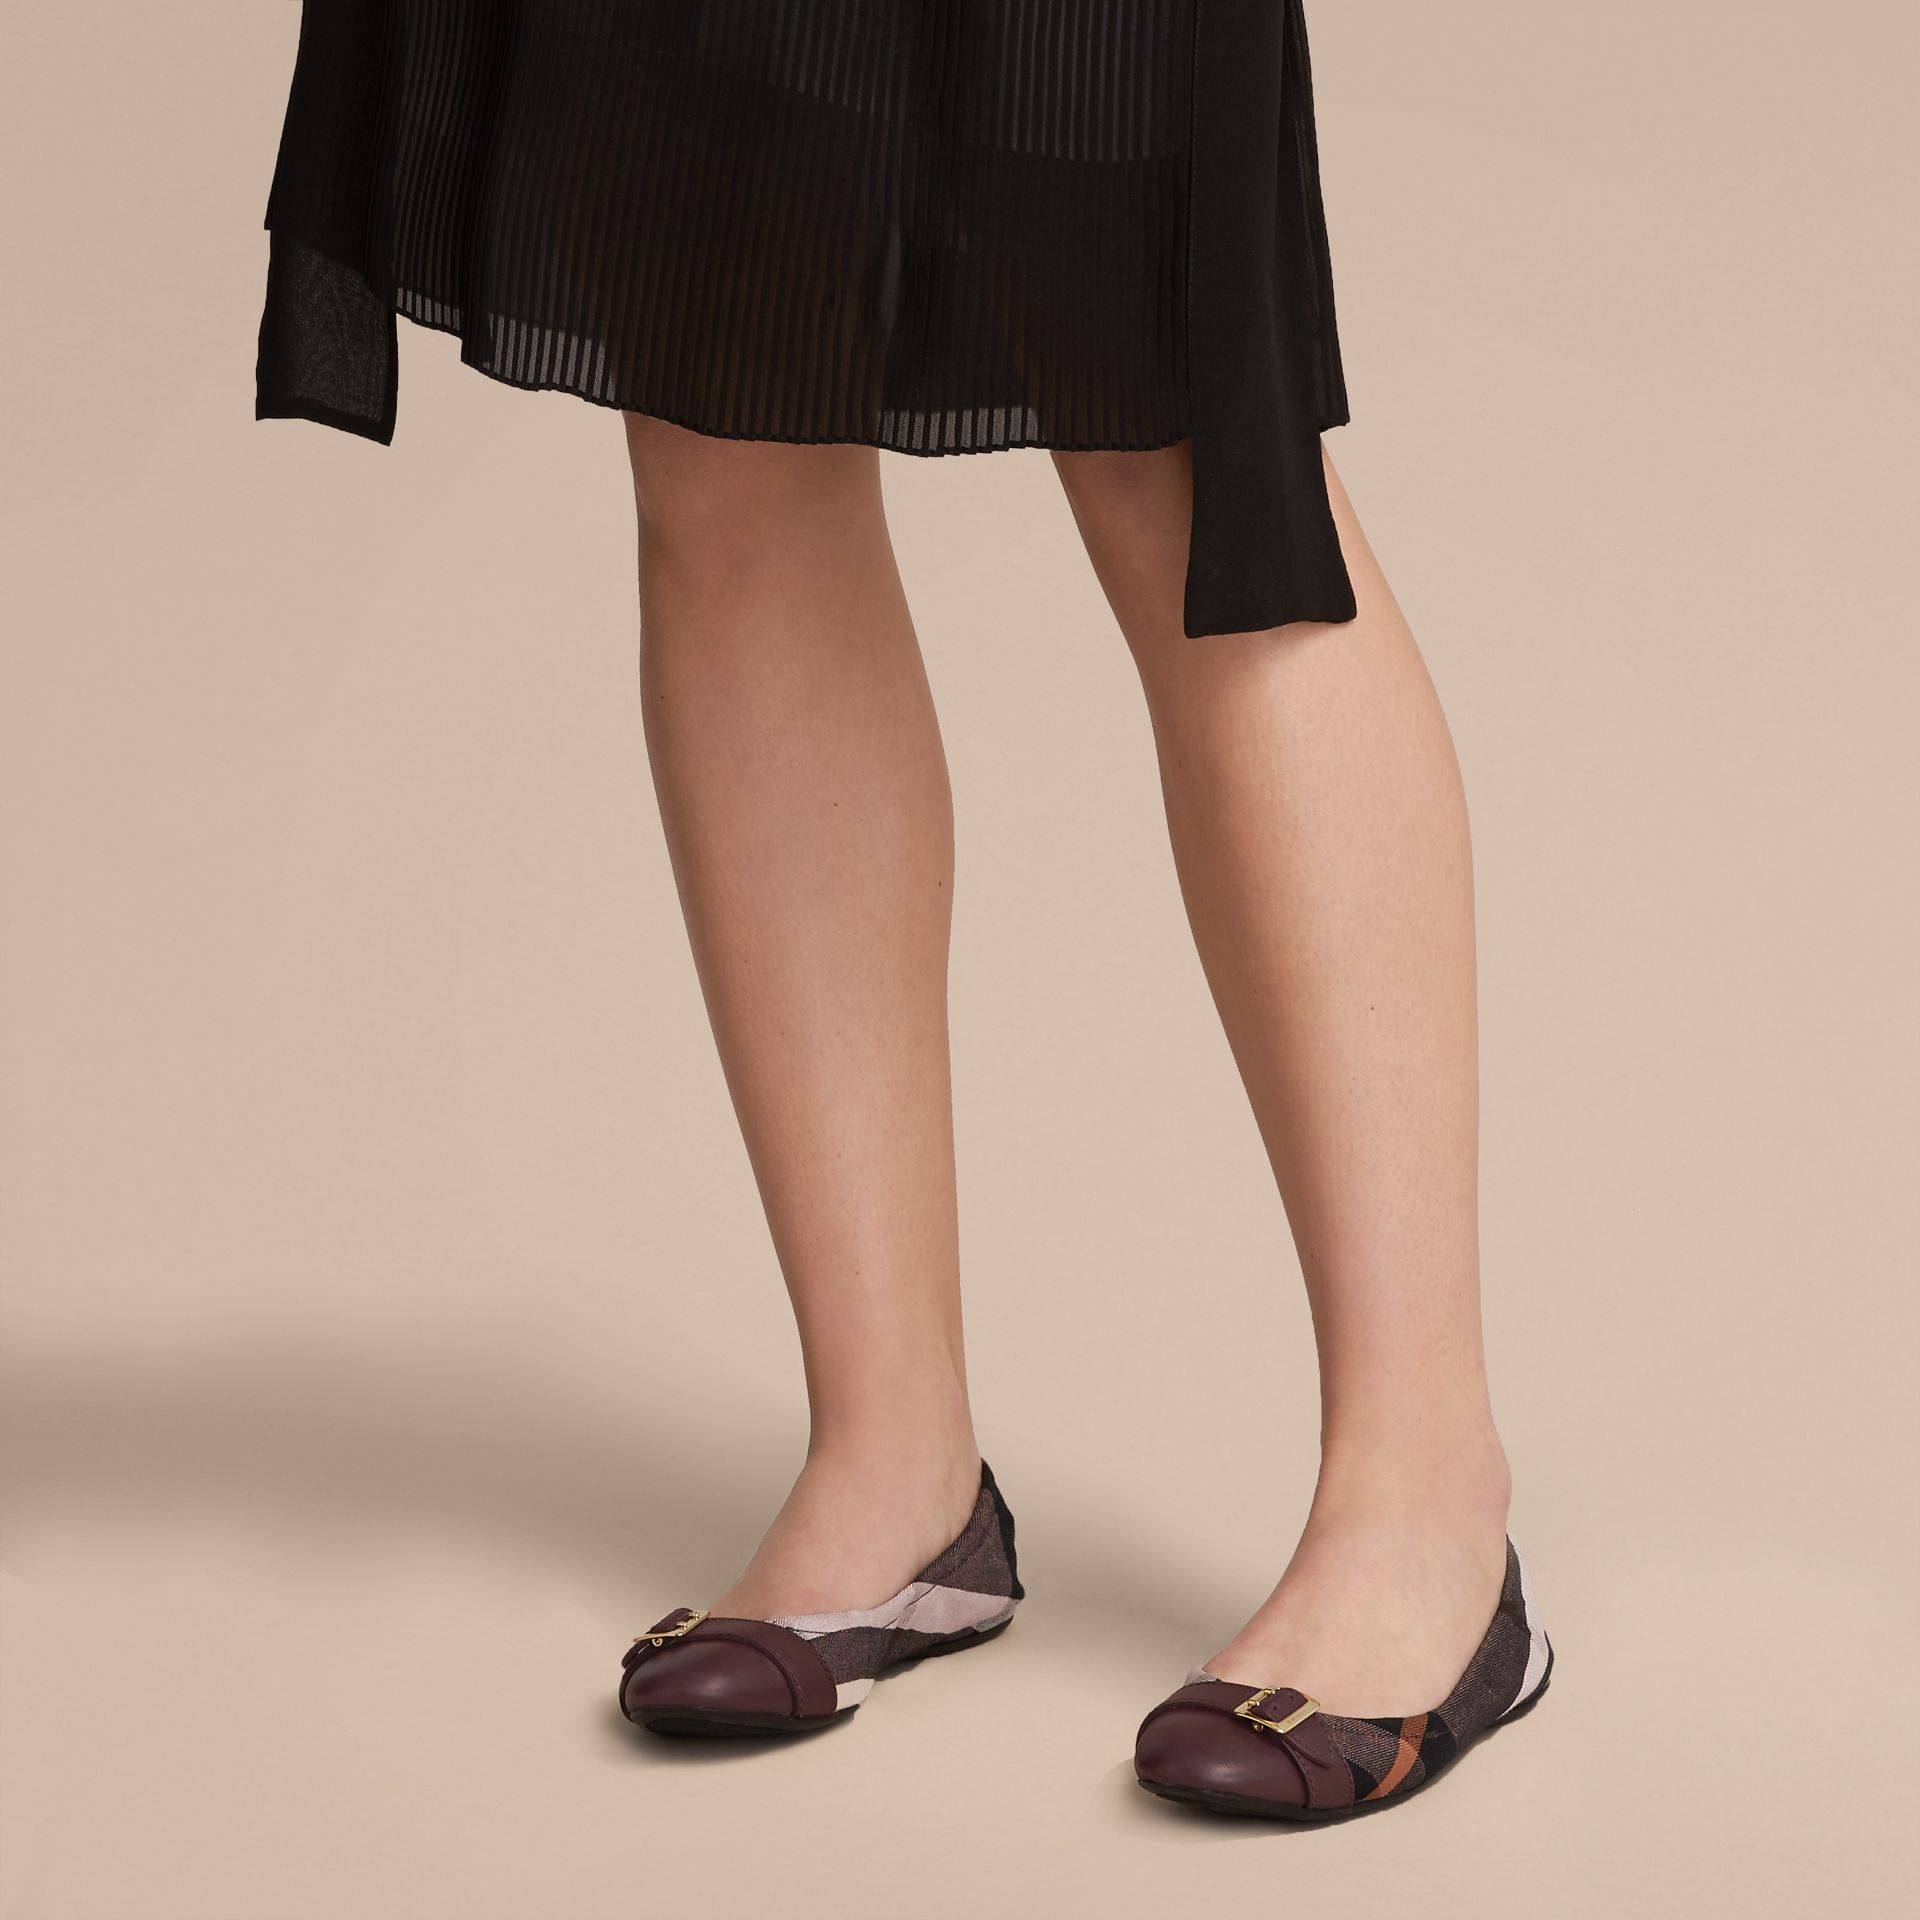 Check Linen Cotton and Leather Ballerinas - Women | Burberry - gallery image 3